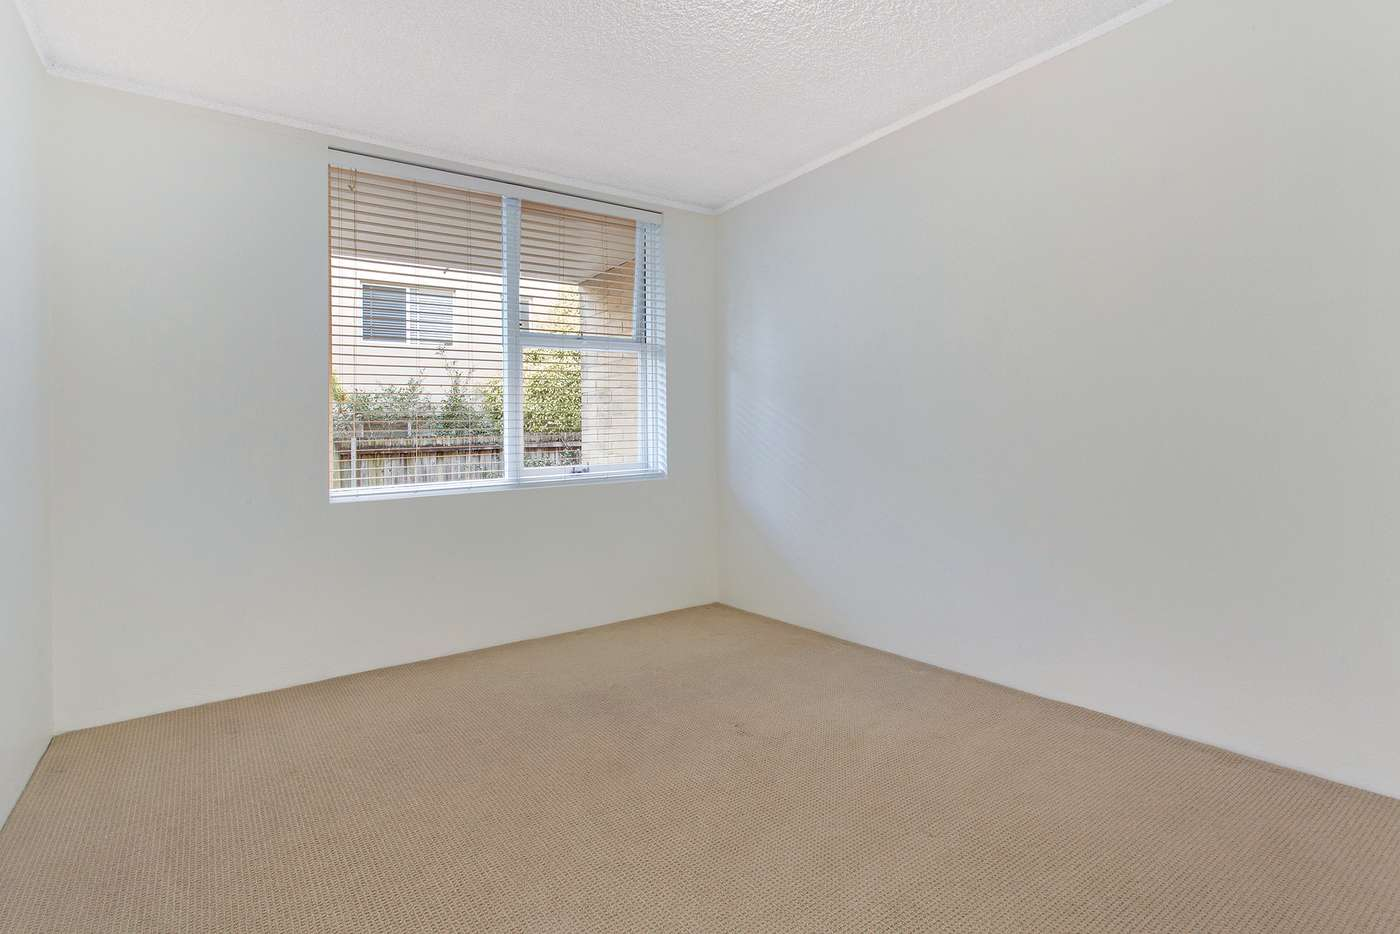 Fourth view of Homely apartment listing, 3/6 Campbell Parade, Manly Vale NSW 2093